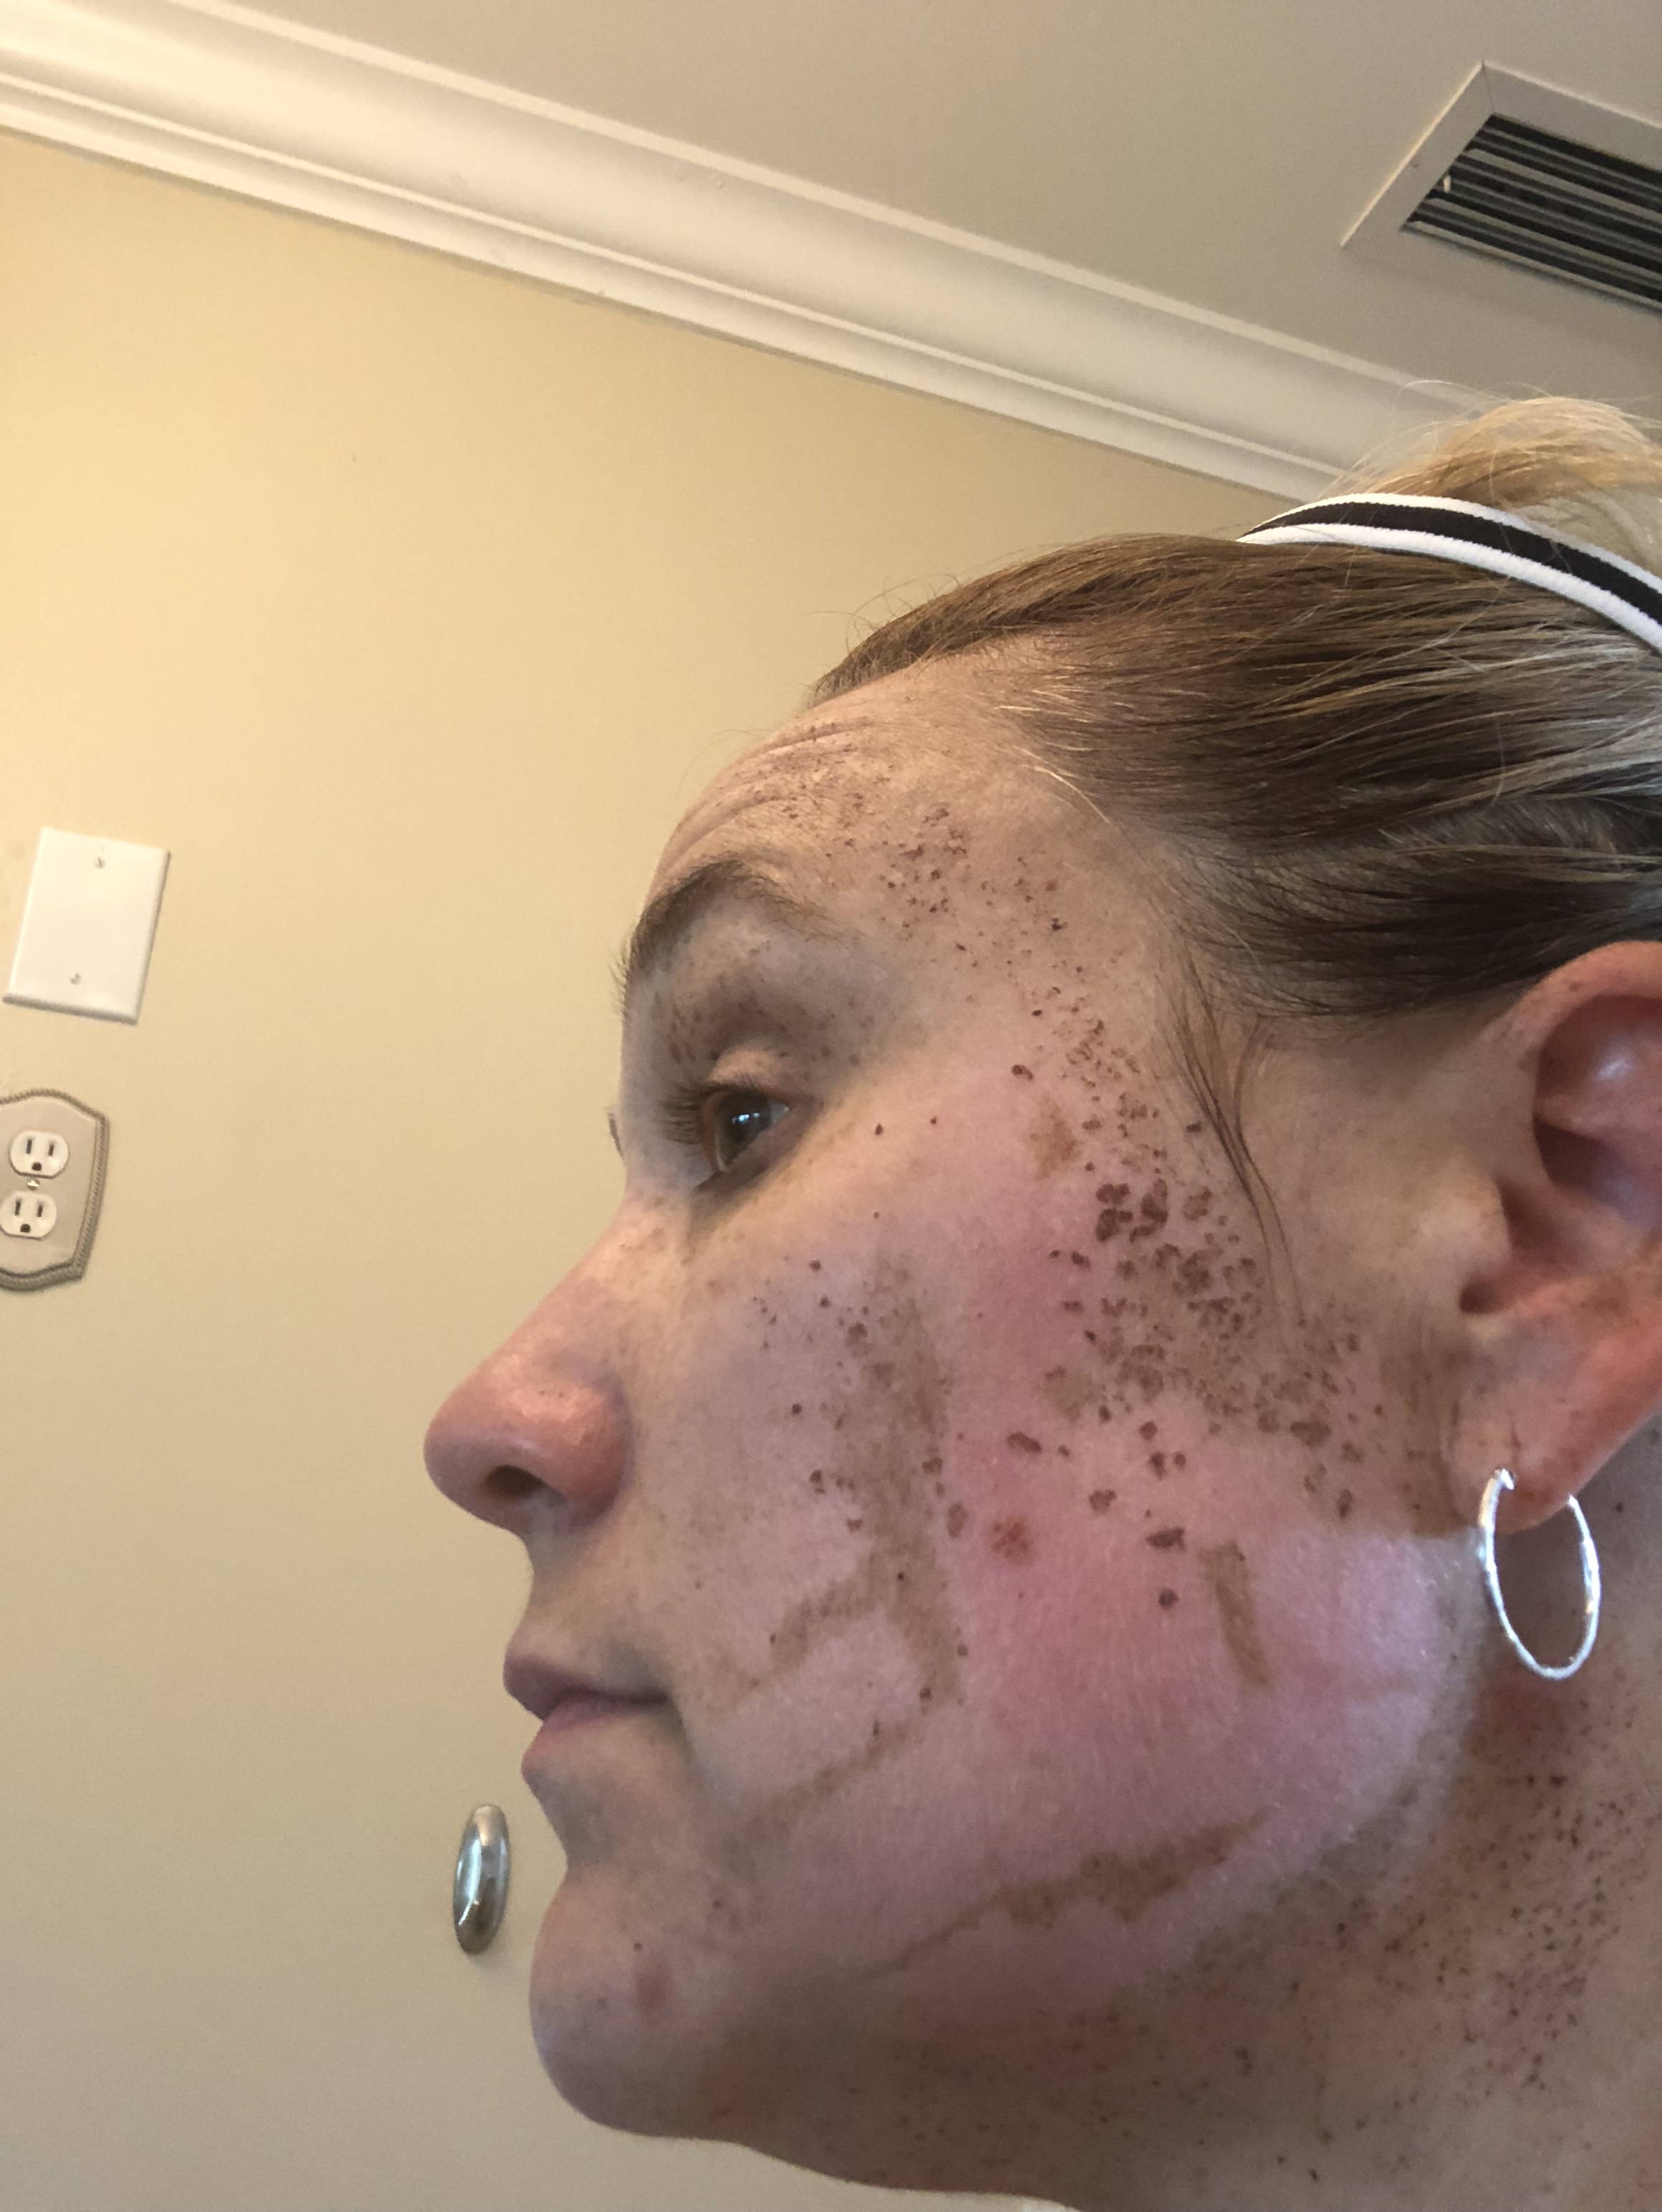 IPL 1 Week Post Treatment